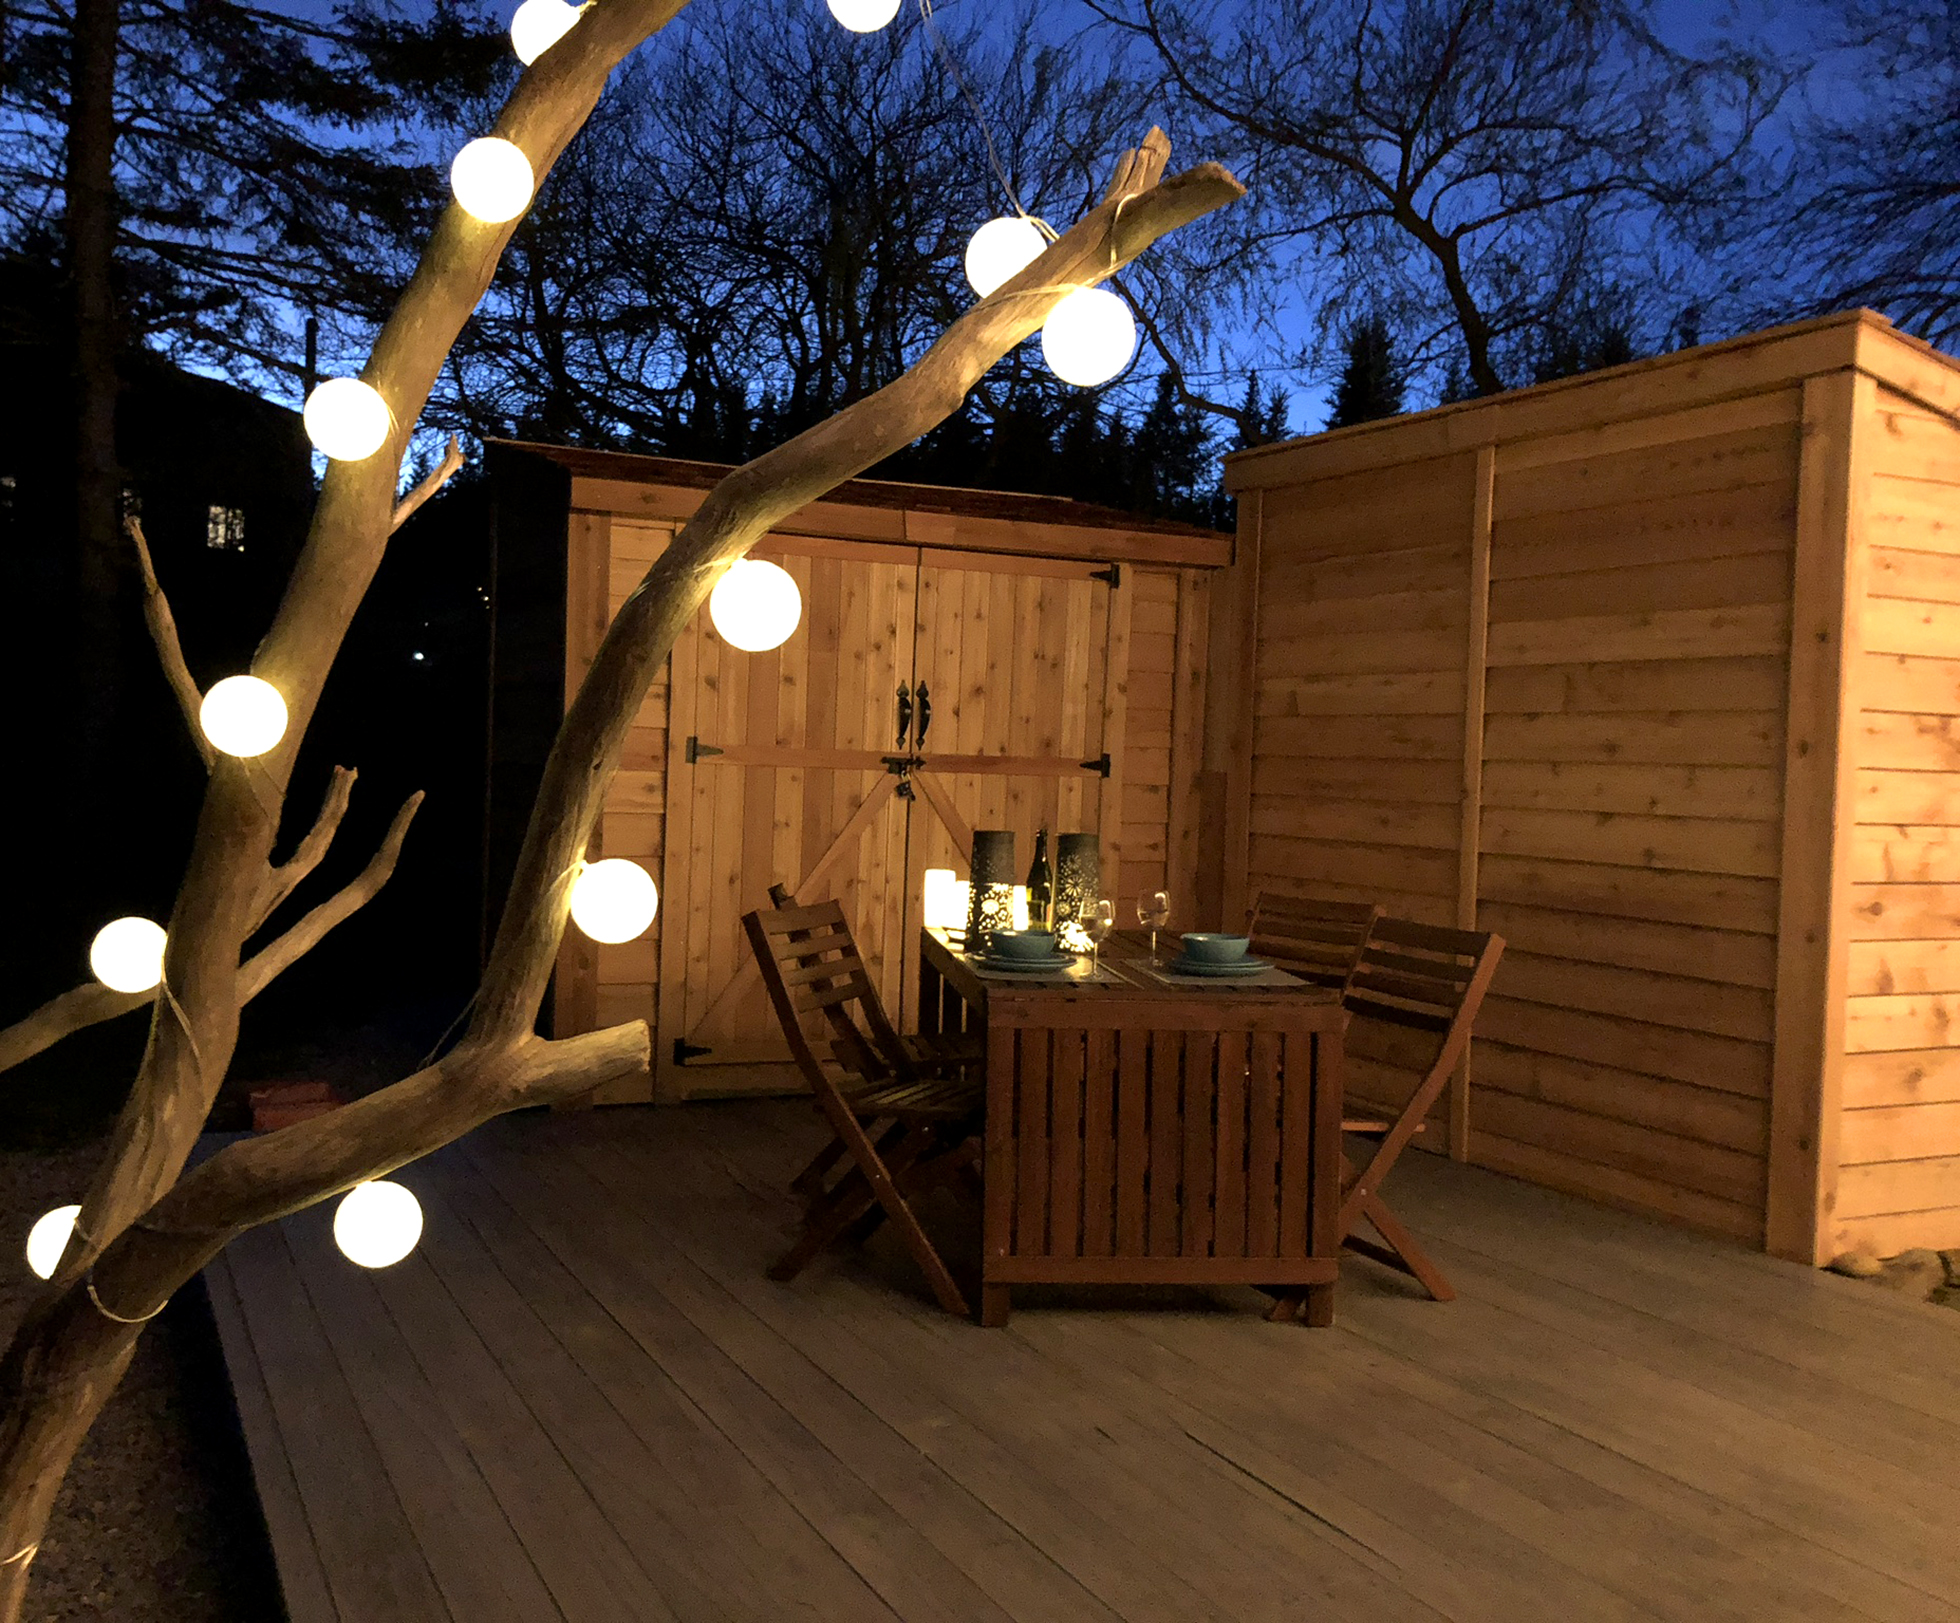 Wood deck with table illuminated by tree with globe lights